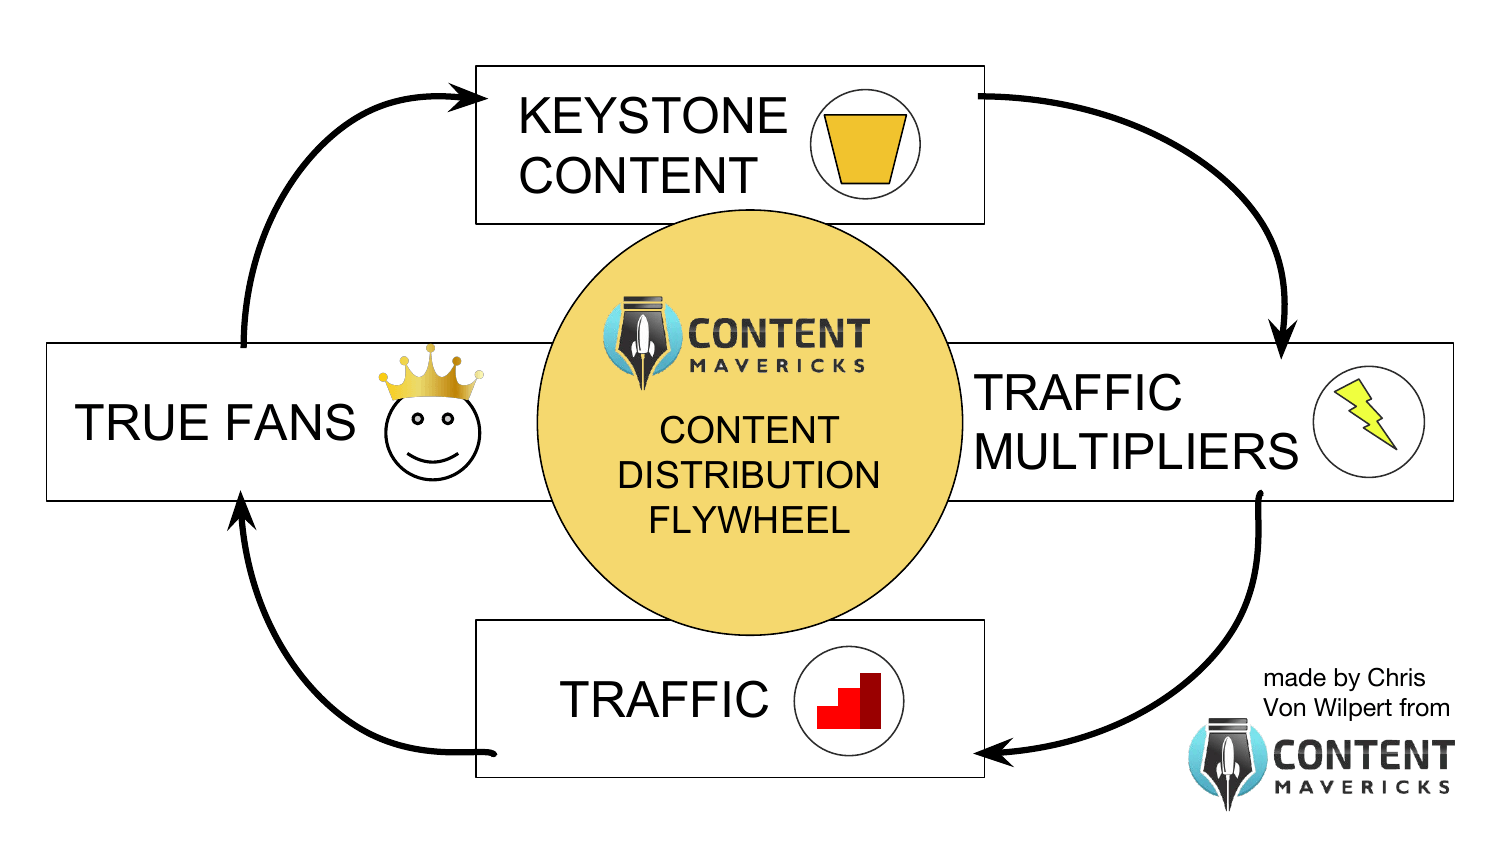 content distribution flywheel image